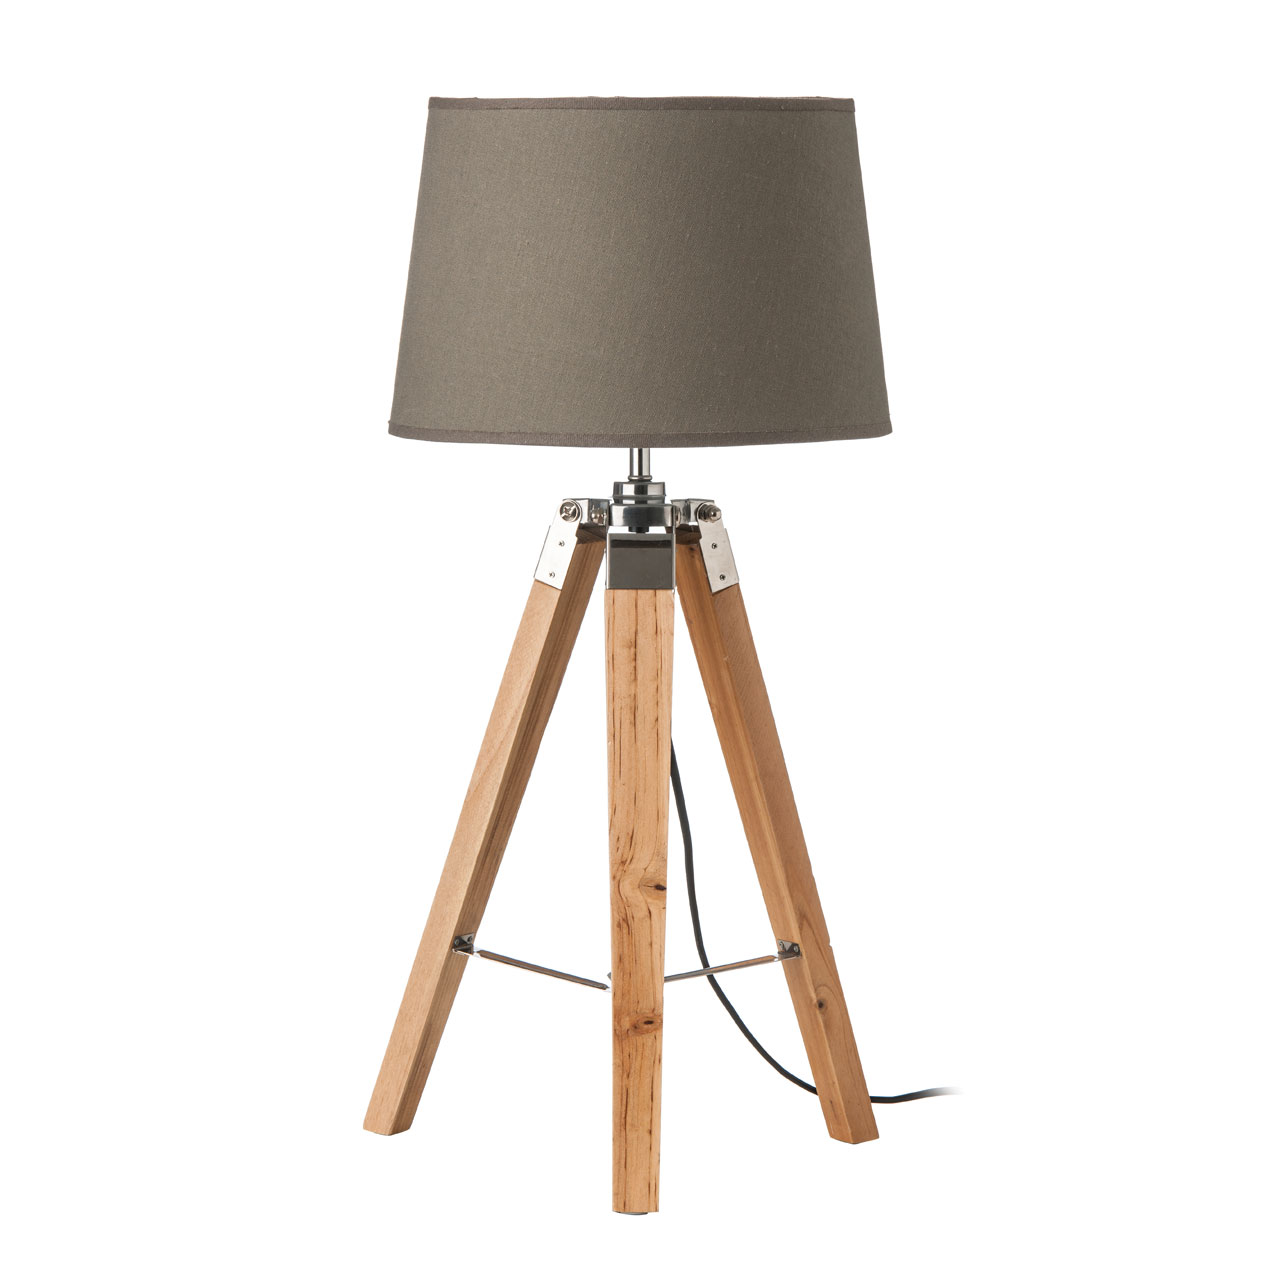 Tripod 1874 Table Lamp